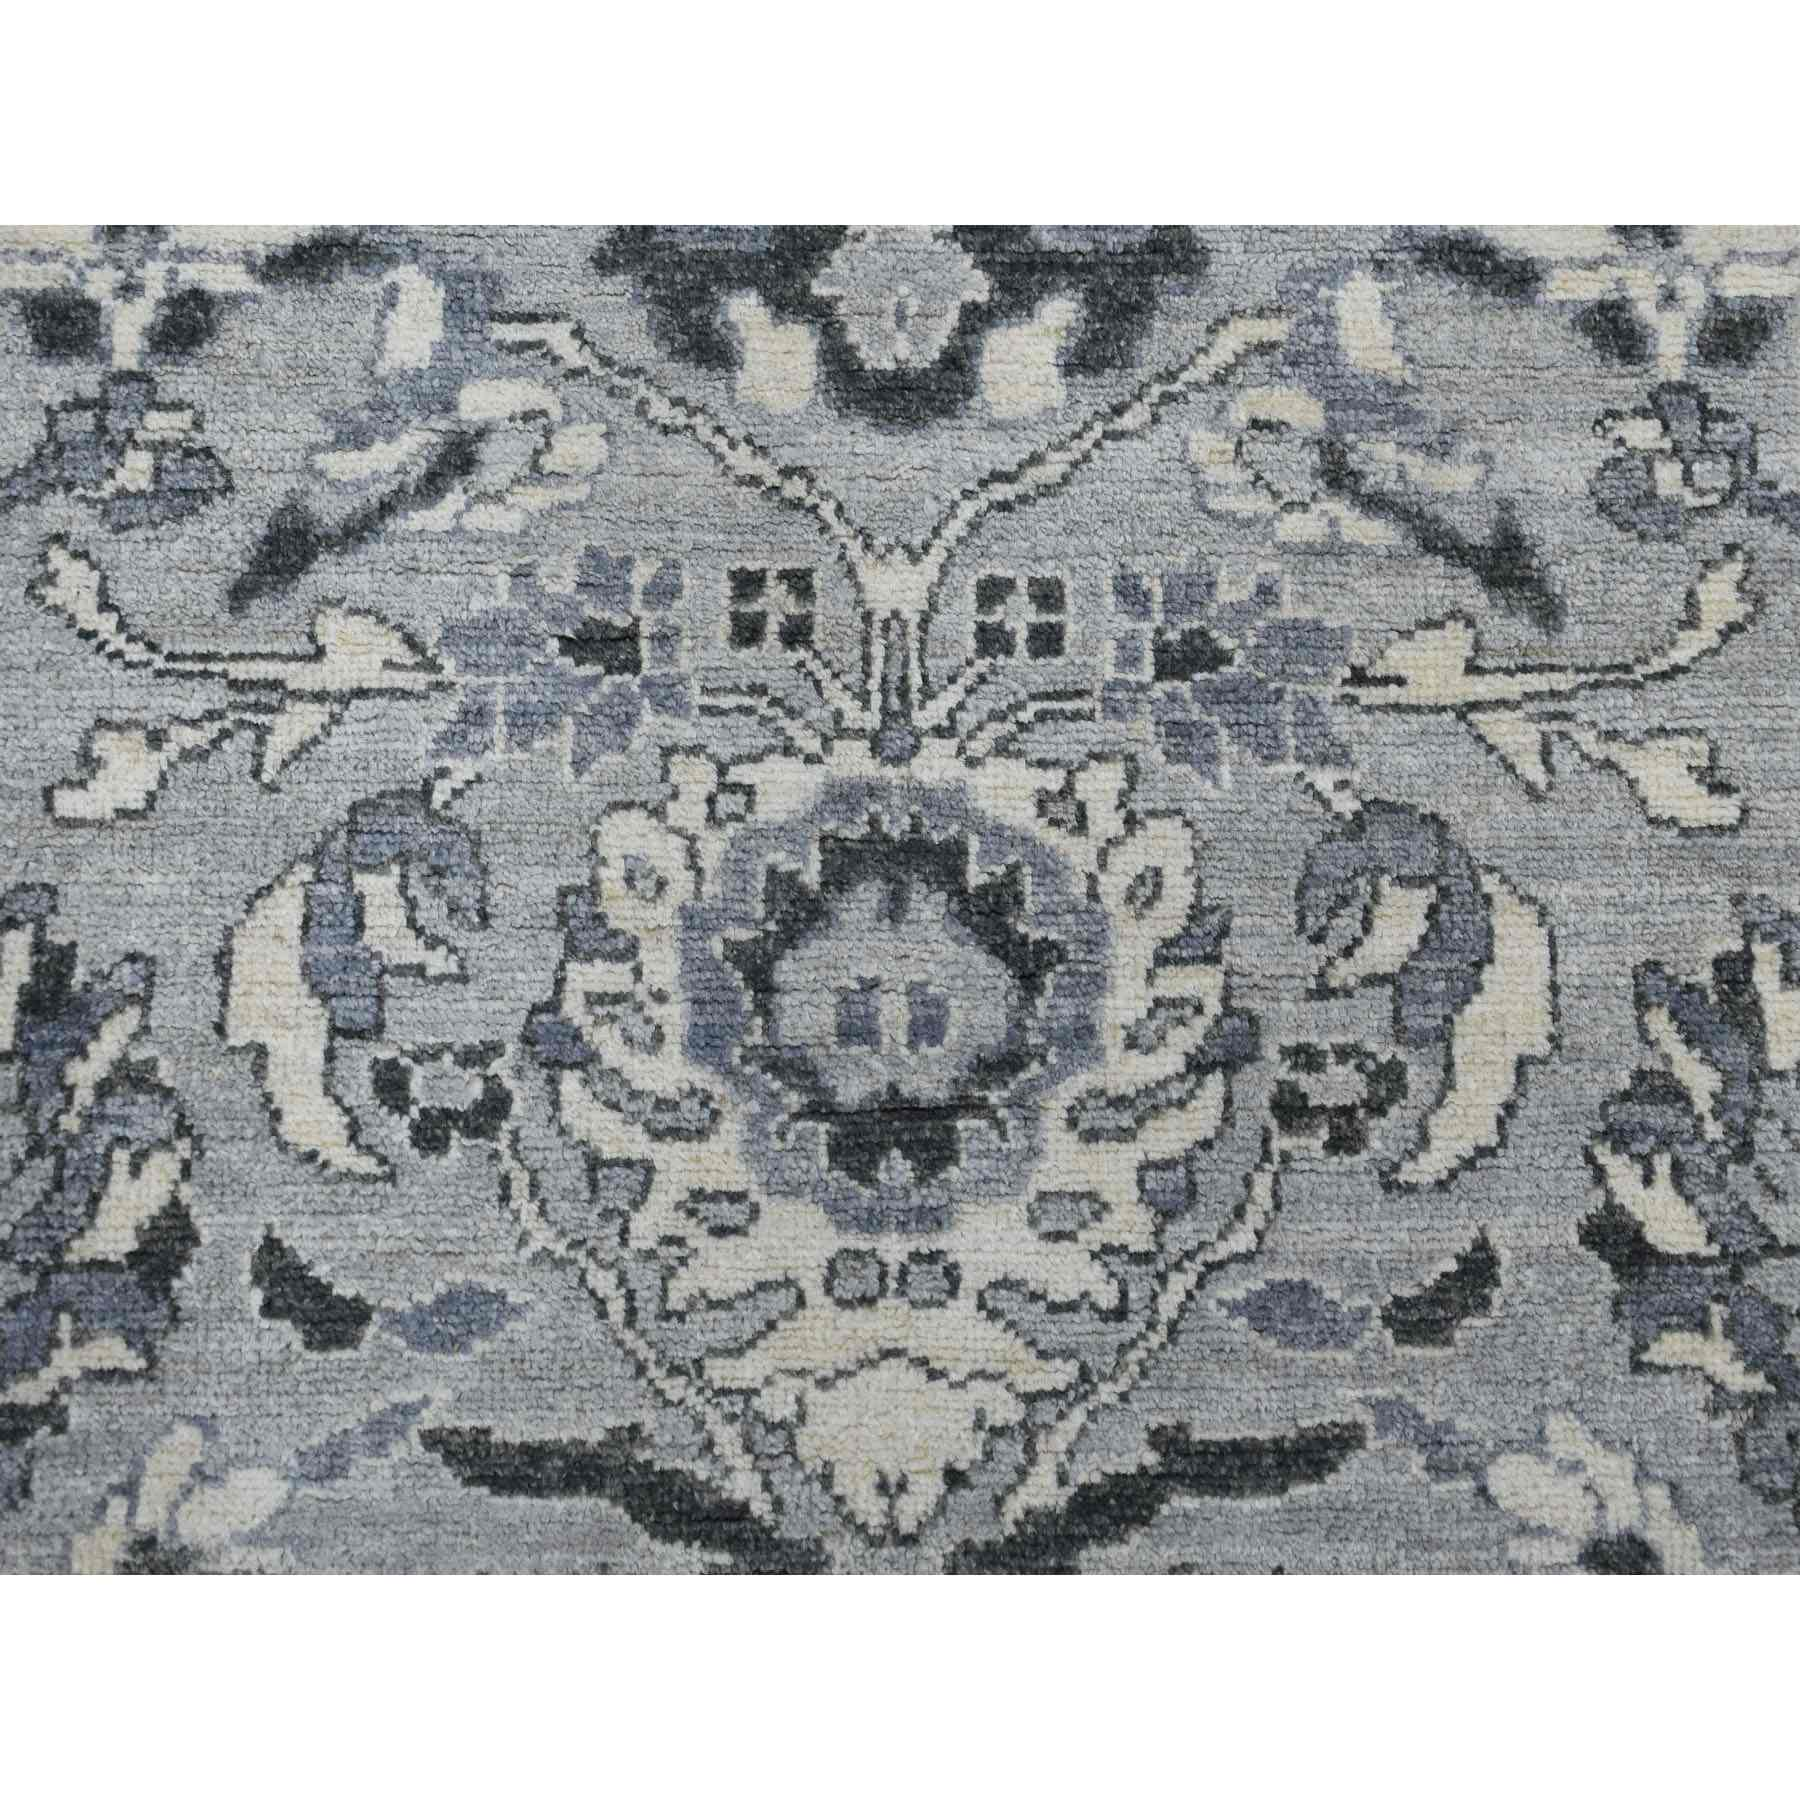 Oushak-And-Peshawar-Hand-Knotted-Rug-257270